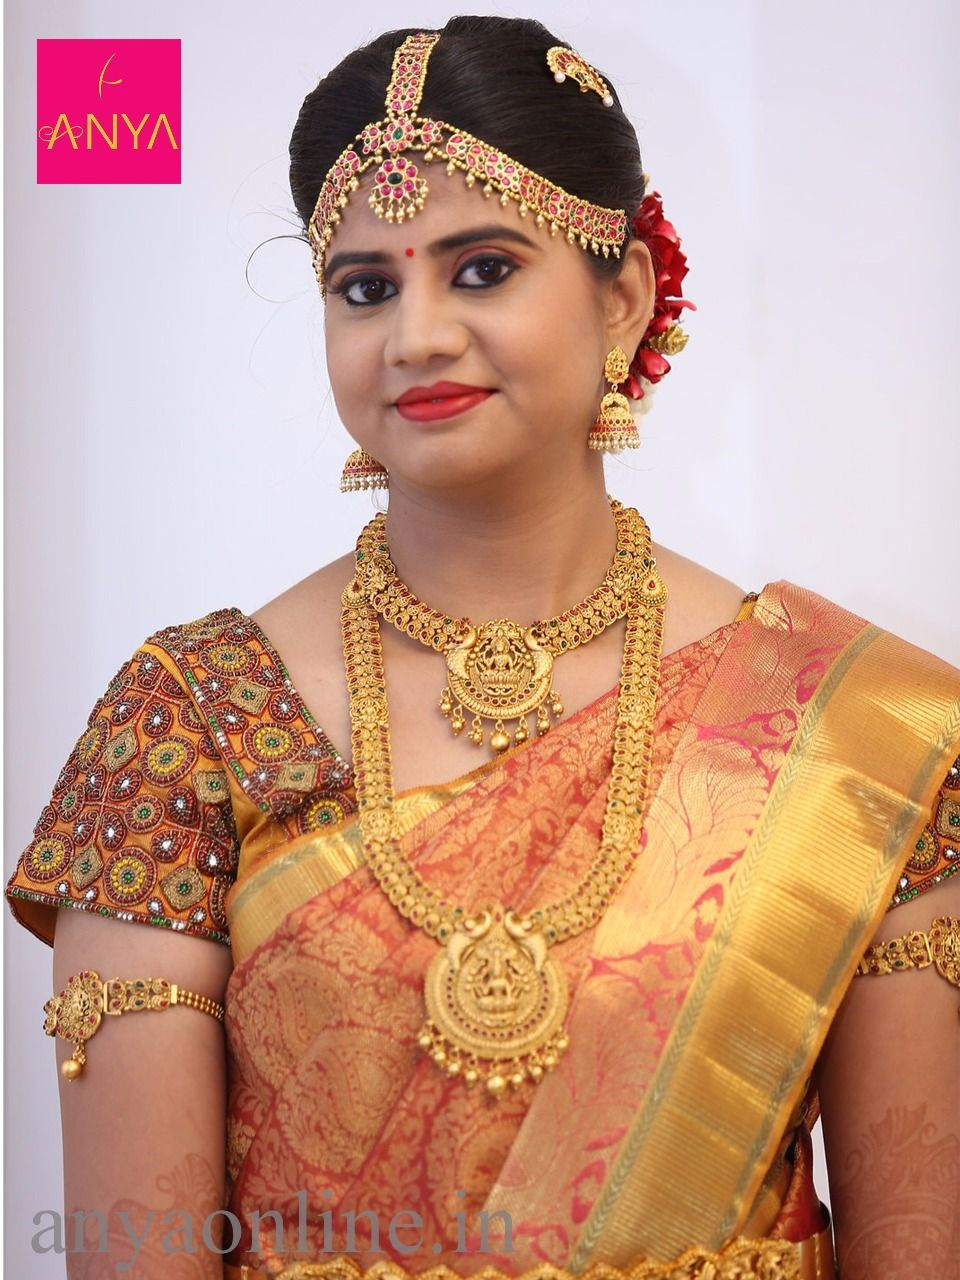 Customised Wedding Kunthan Work Blouses Coimbatore frm